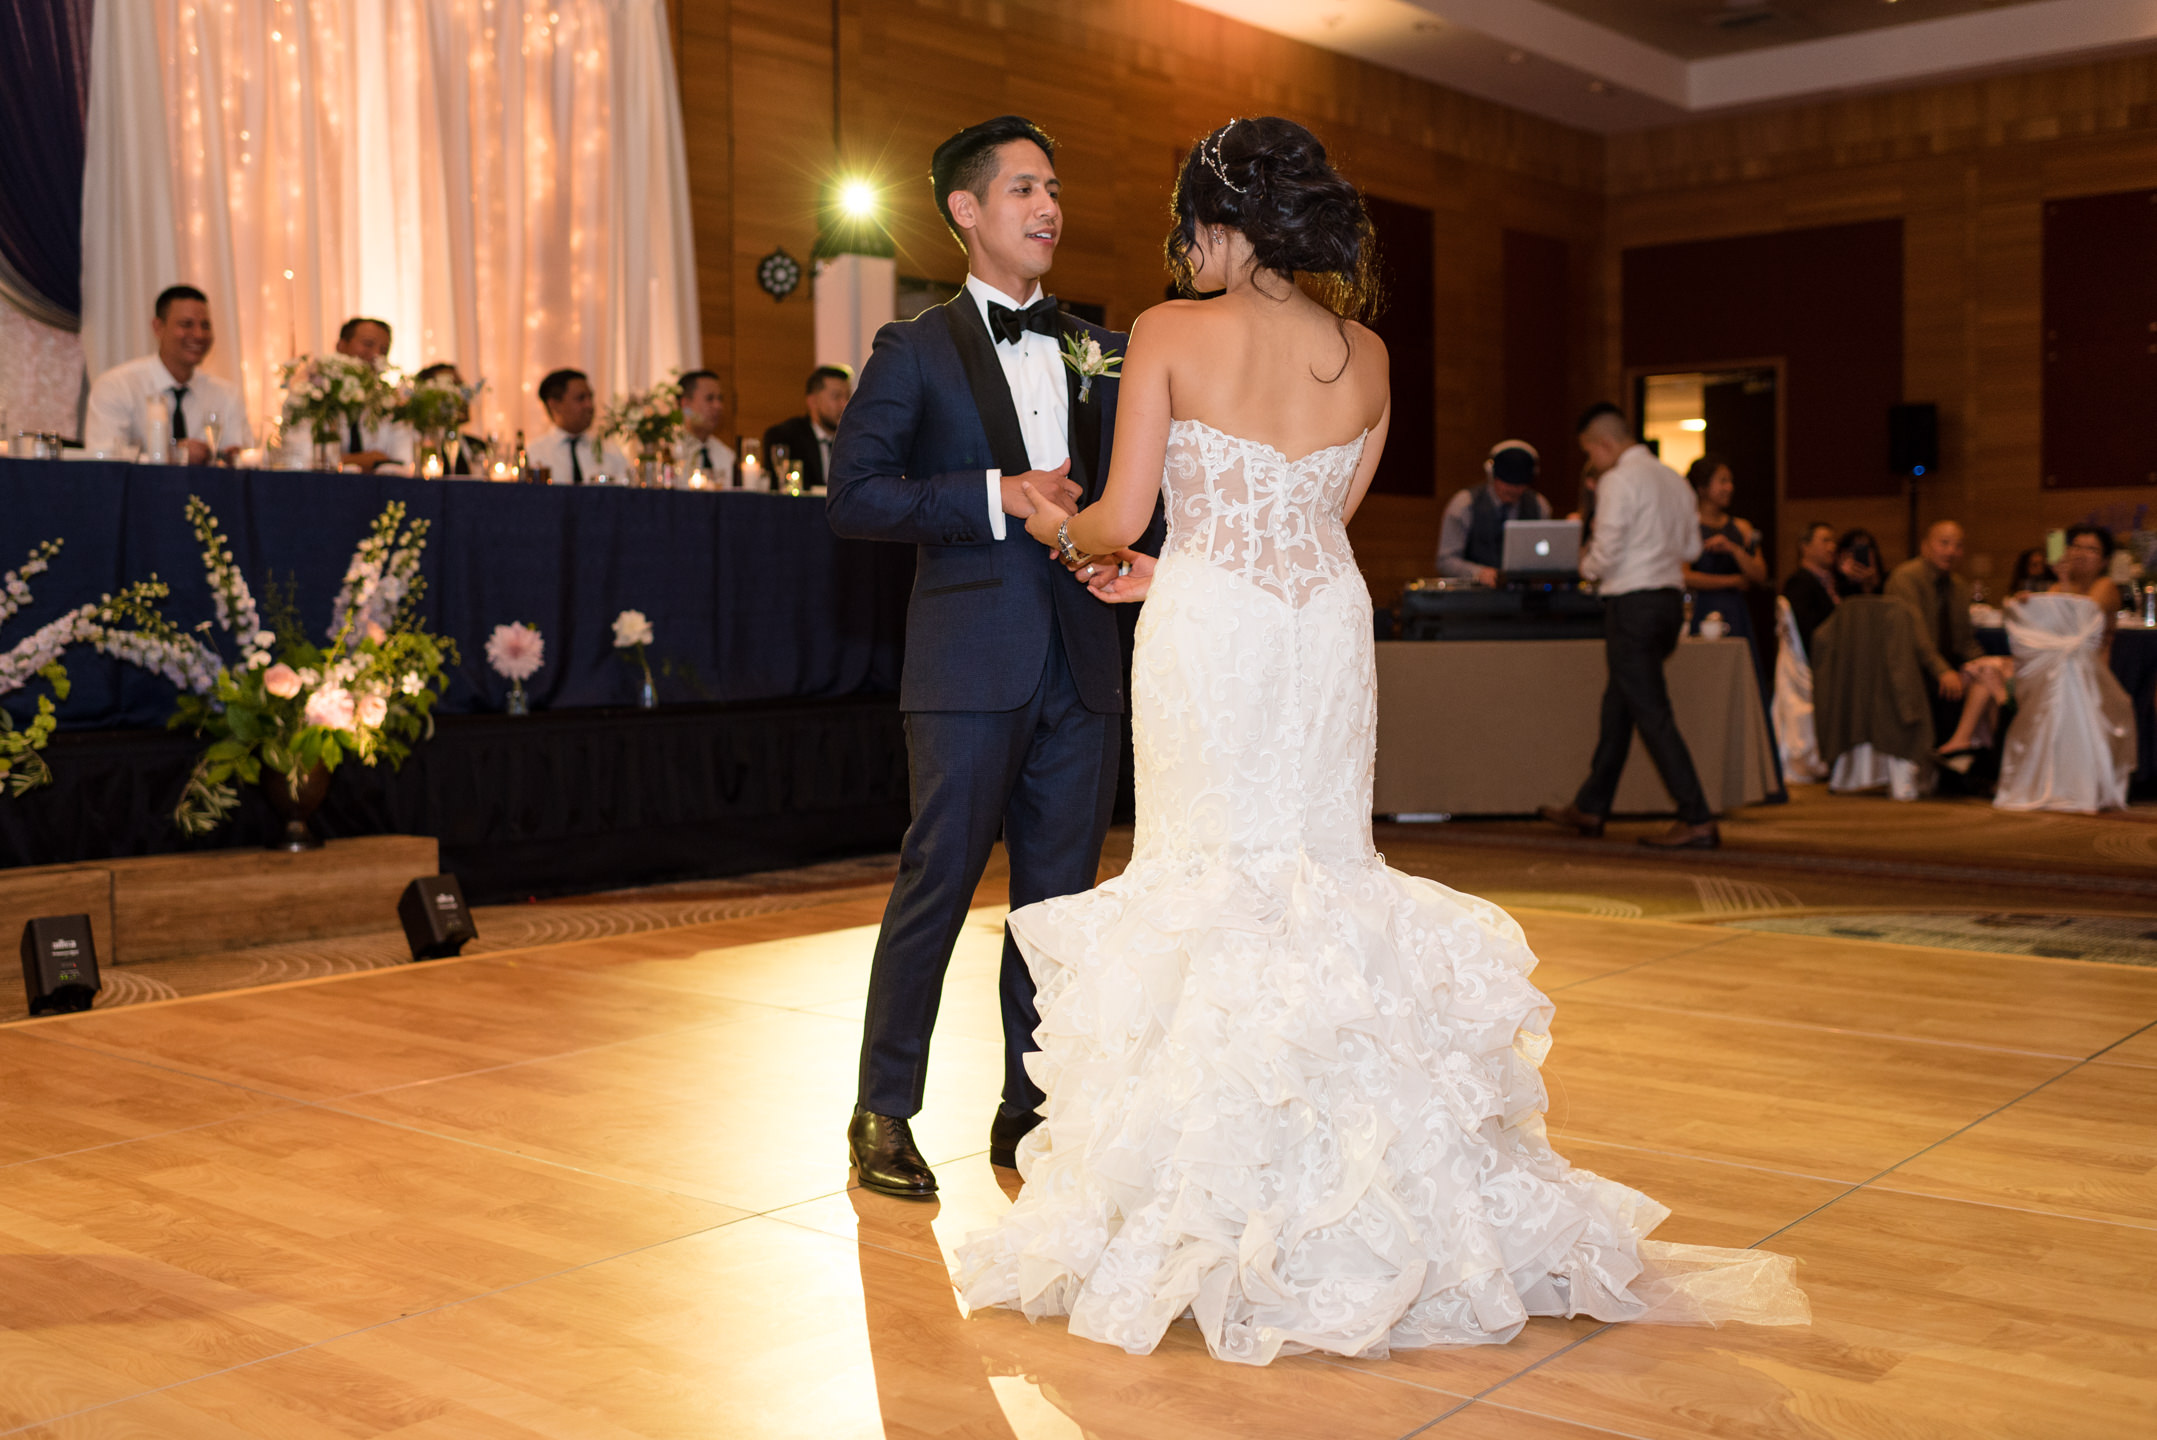 Asian Bride and Groom First Dance at Olive 8